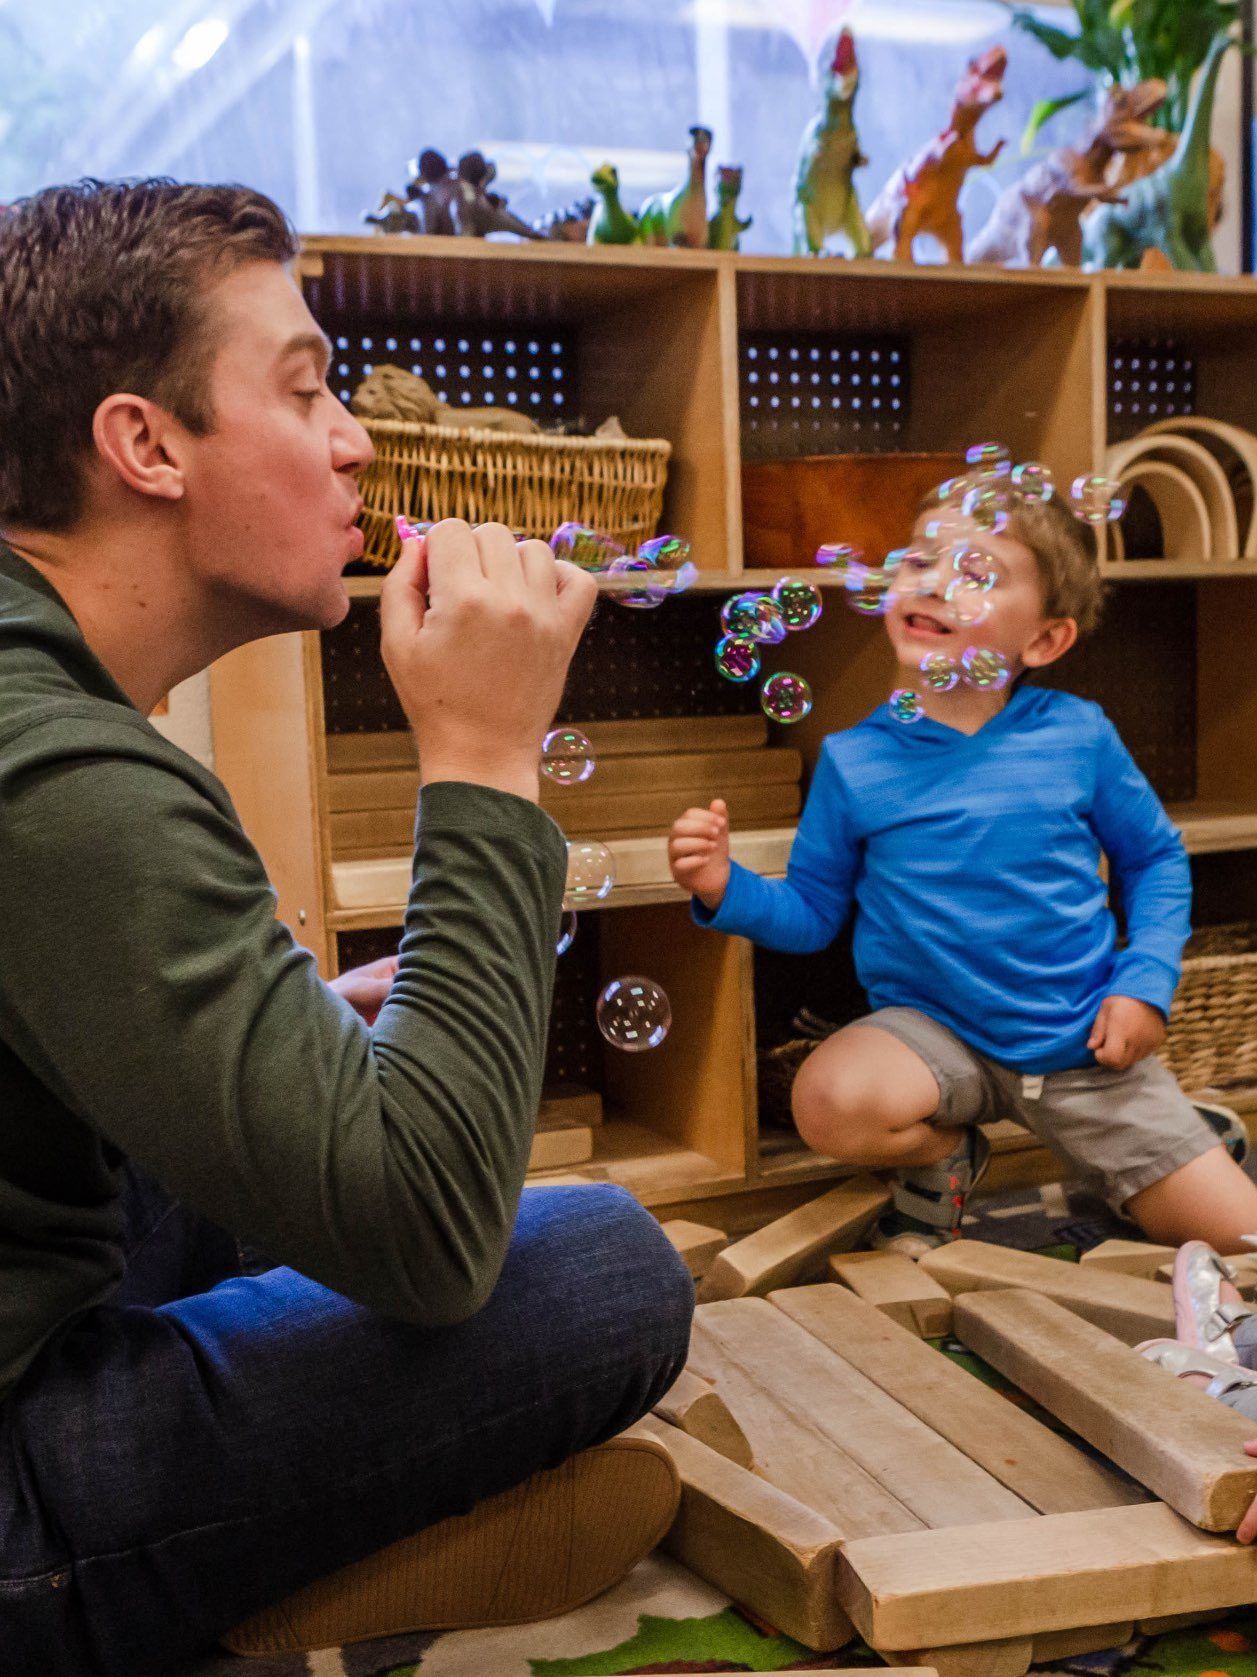 Man blowing bubbles with toddler